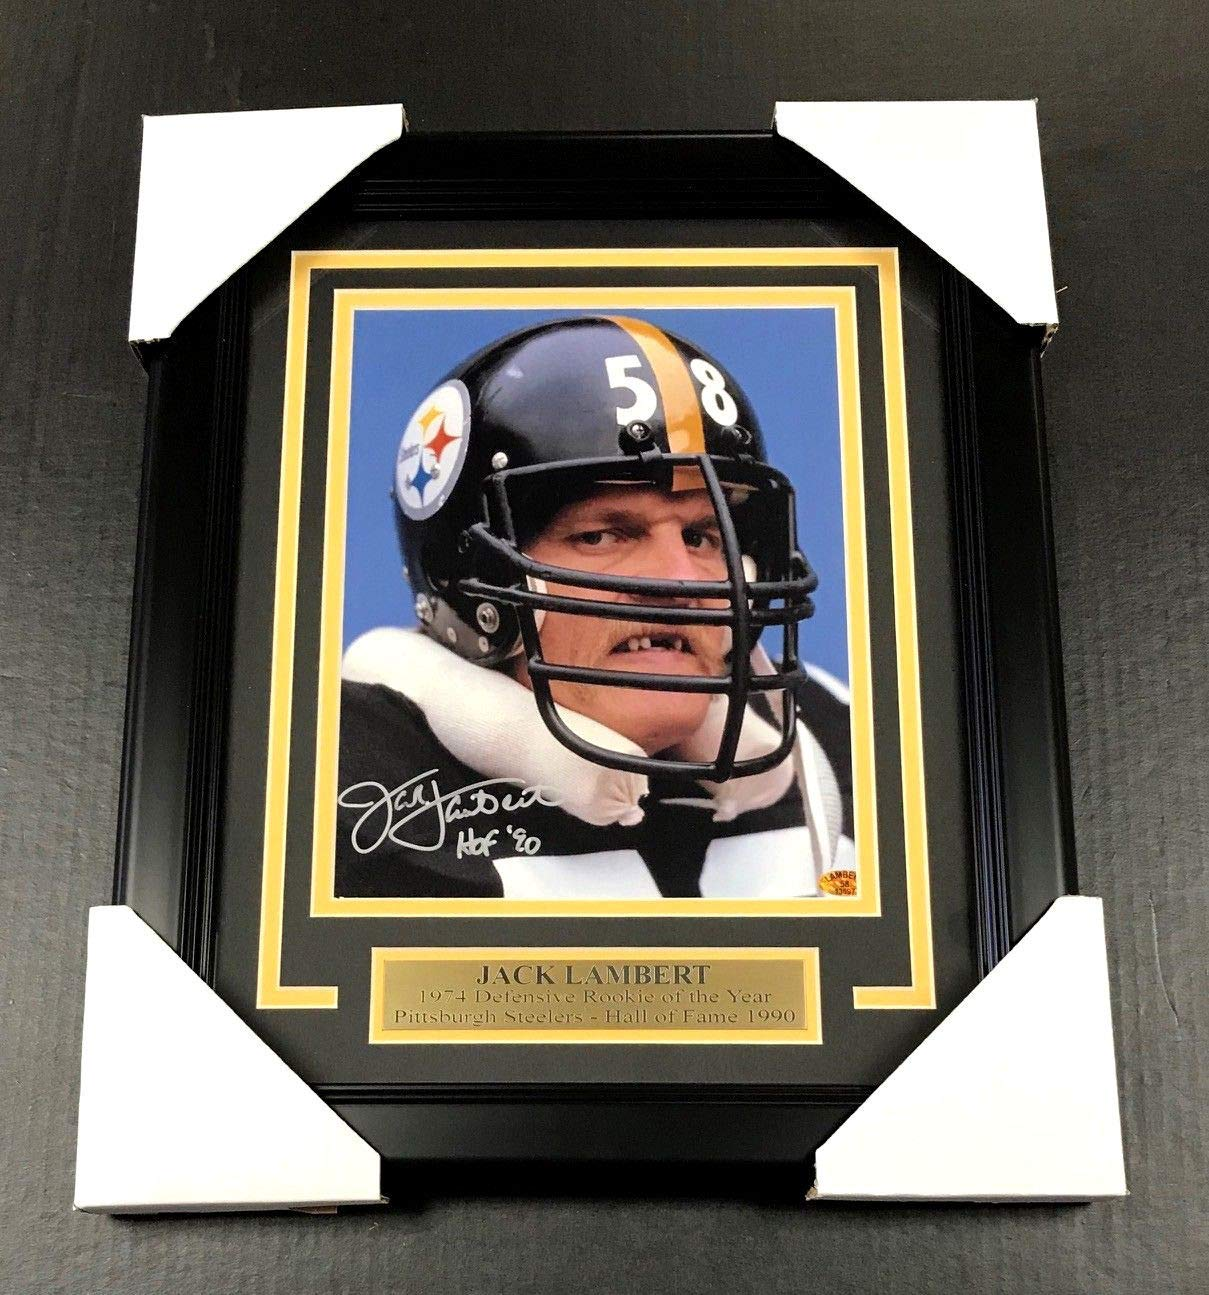 JACK LAMBERT DRACULA SIGNED AUTOGRAPHED 8X10 PHOTO FRAMED PITTSBURGH STEELERS